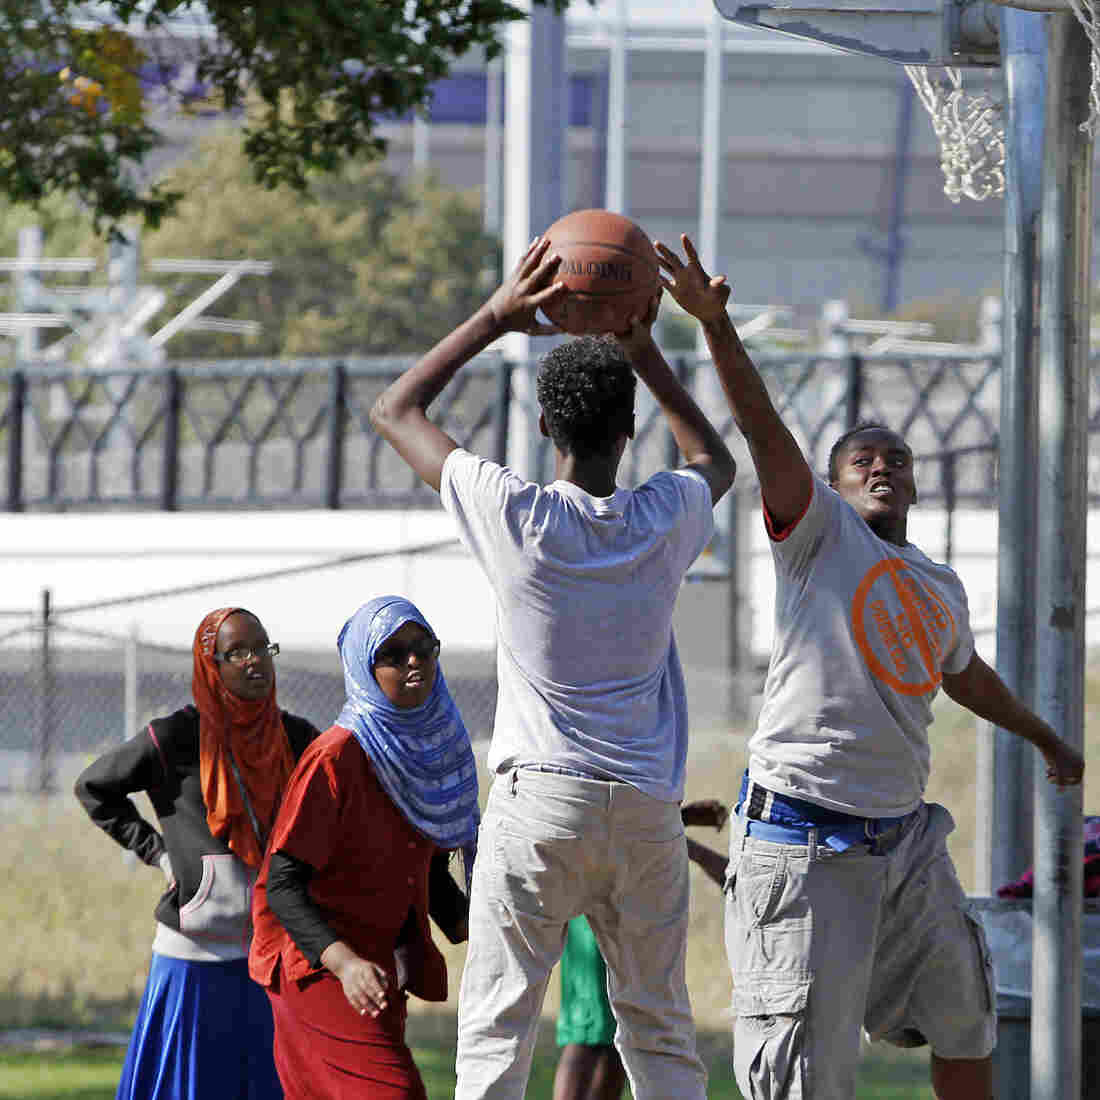 Somali-American youths play basketball before the start of a September 2013 solidarity rally by the Minneapolis Somali community to denounce al-Shabab's attack of a shopping mall in Nairobi, Kenya. Less than a decade after groups of teens from Minneapolis emigrated to Somalia to join the terrorist group, more have been recruited to join the self-declared Islamic State in Syria.